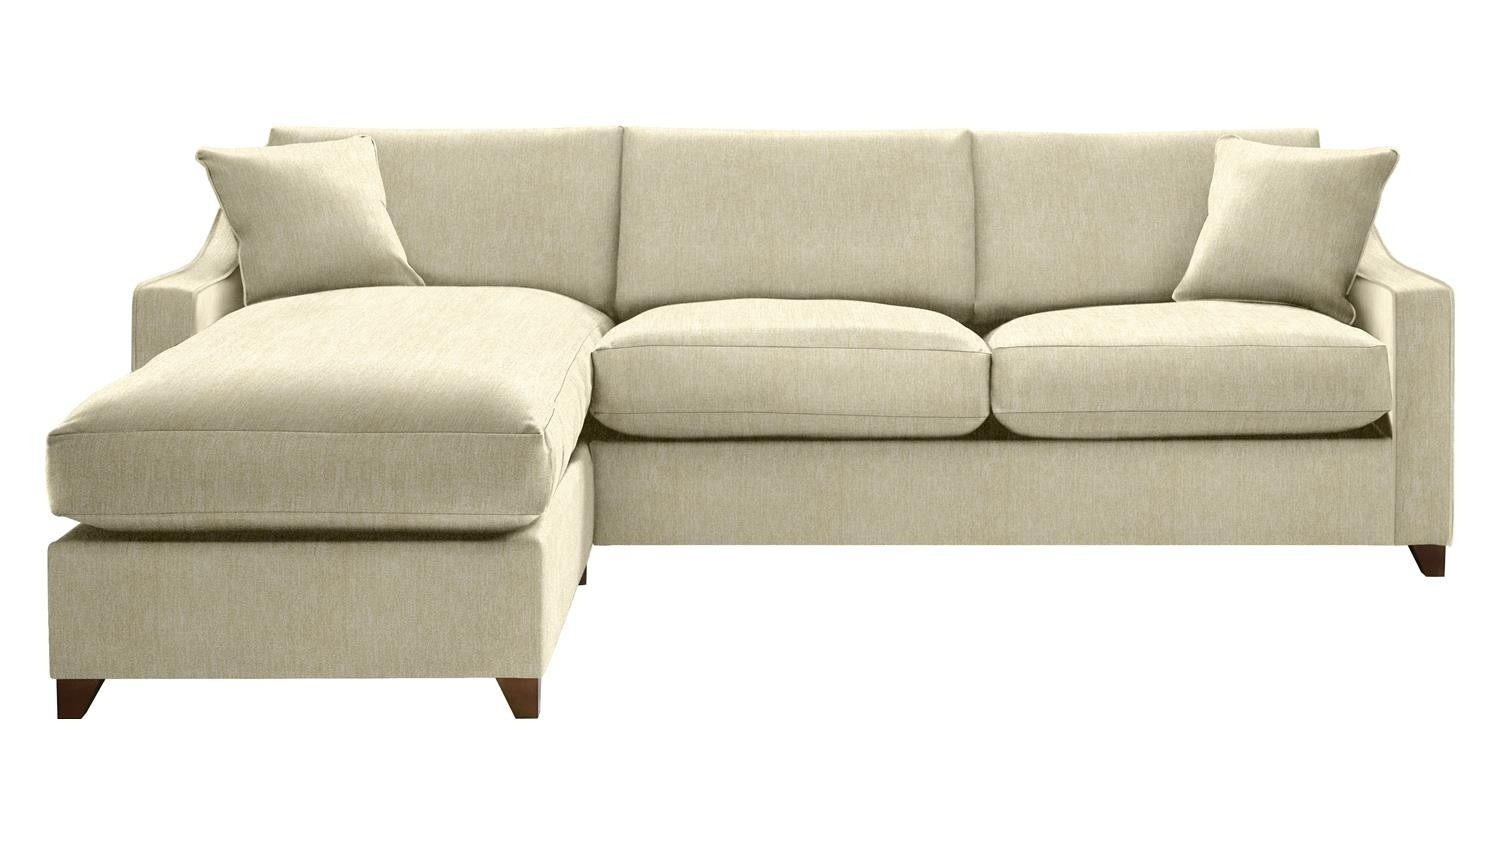 The Bermerton 4 Seater Left Chaise Storage Sofa Bed